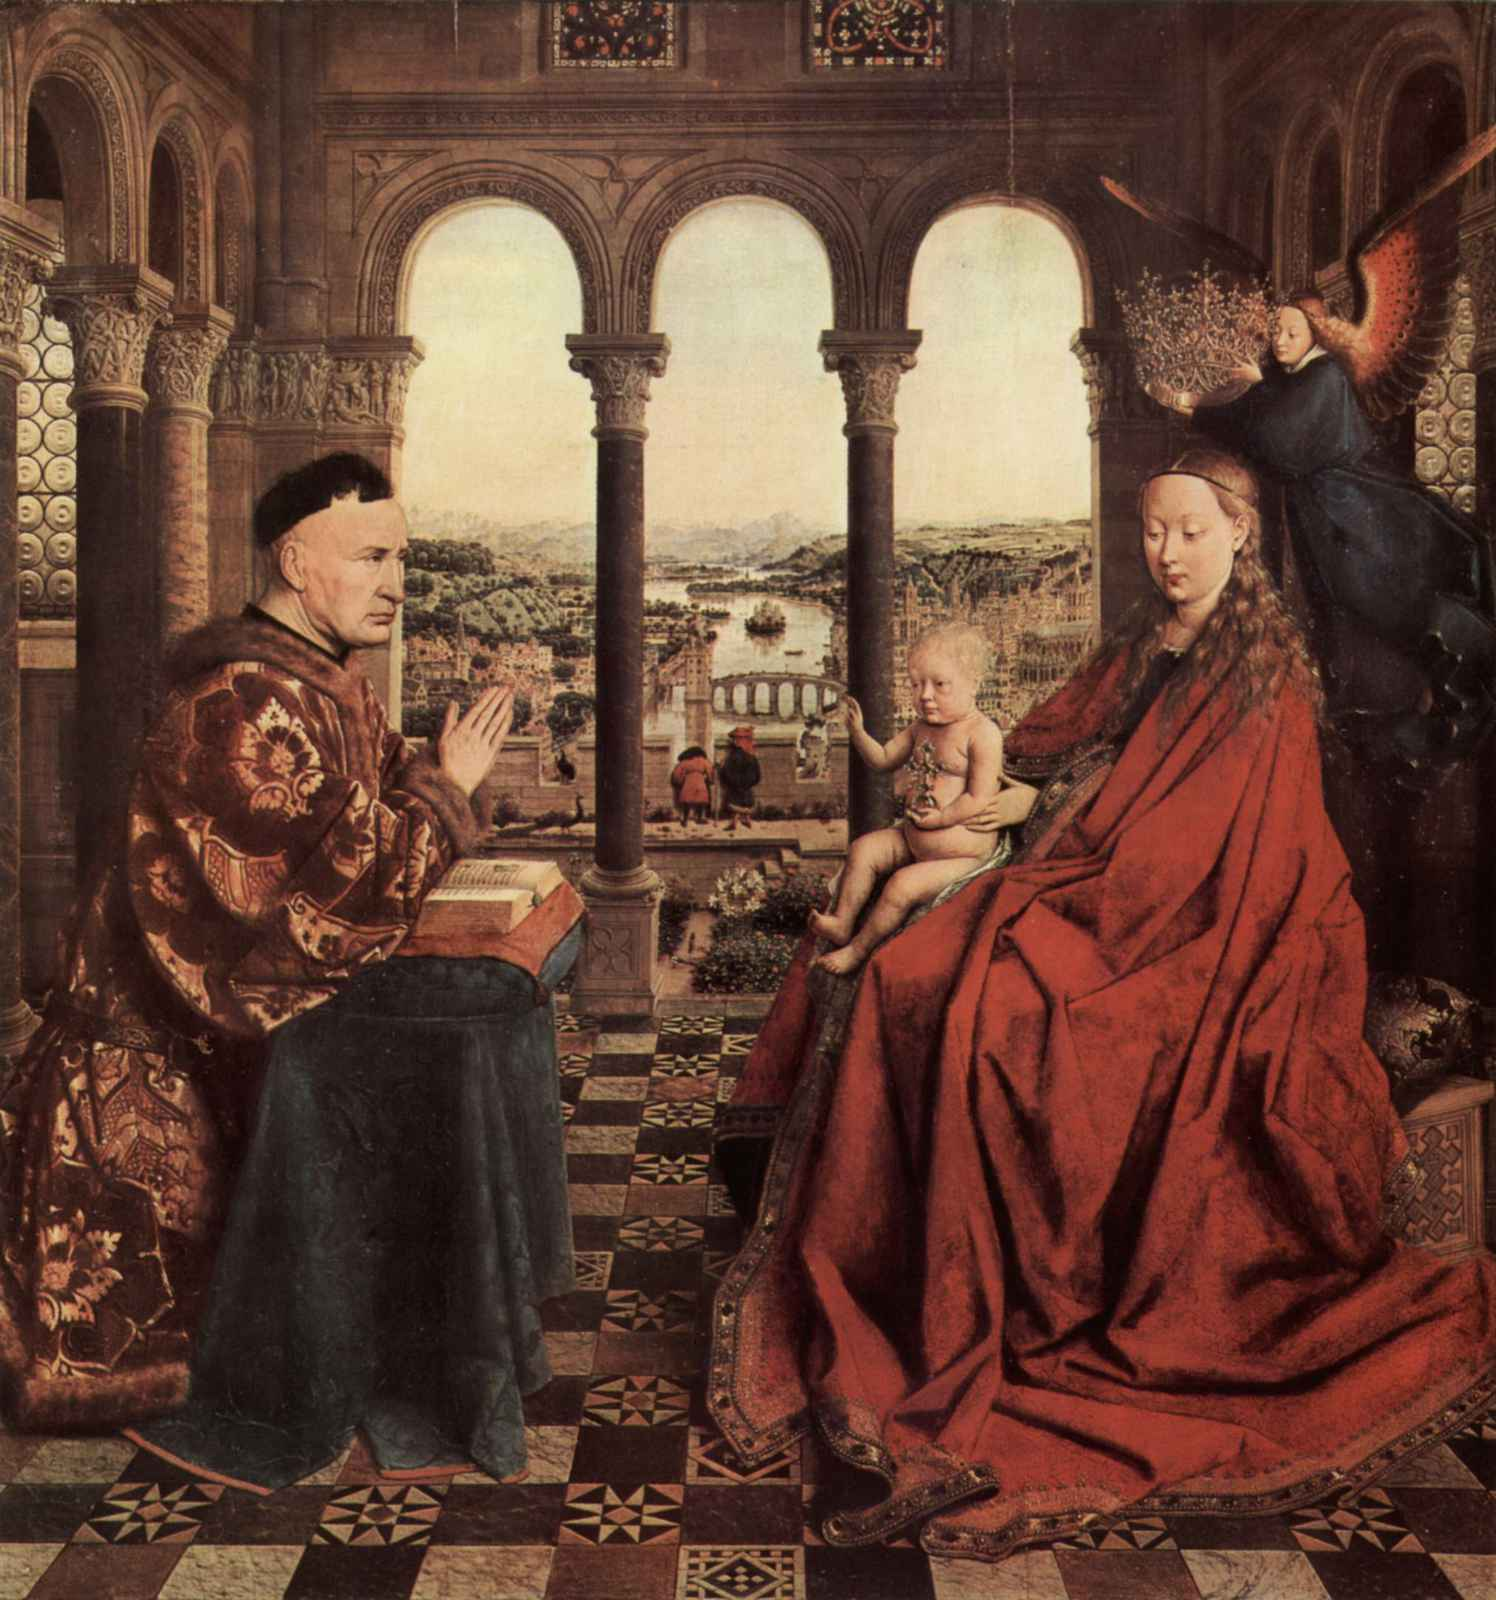 Van eyck to memling northern renaissance art c1430 1480 online van eyck to memling northern renaissance art c1430 1480 online oxford university department for continuing education biocorpaavc Image collections